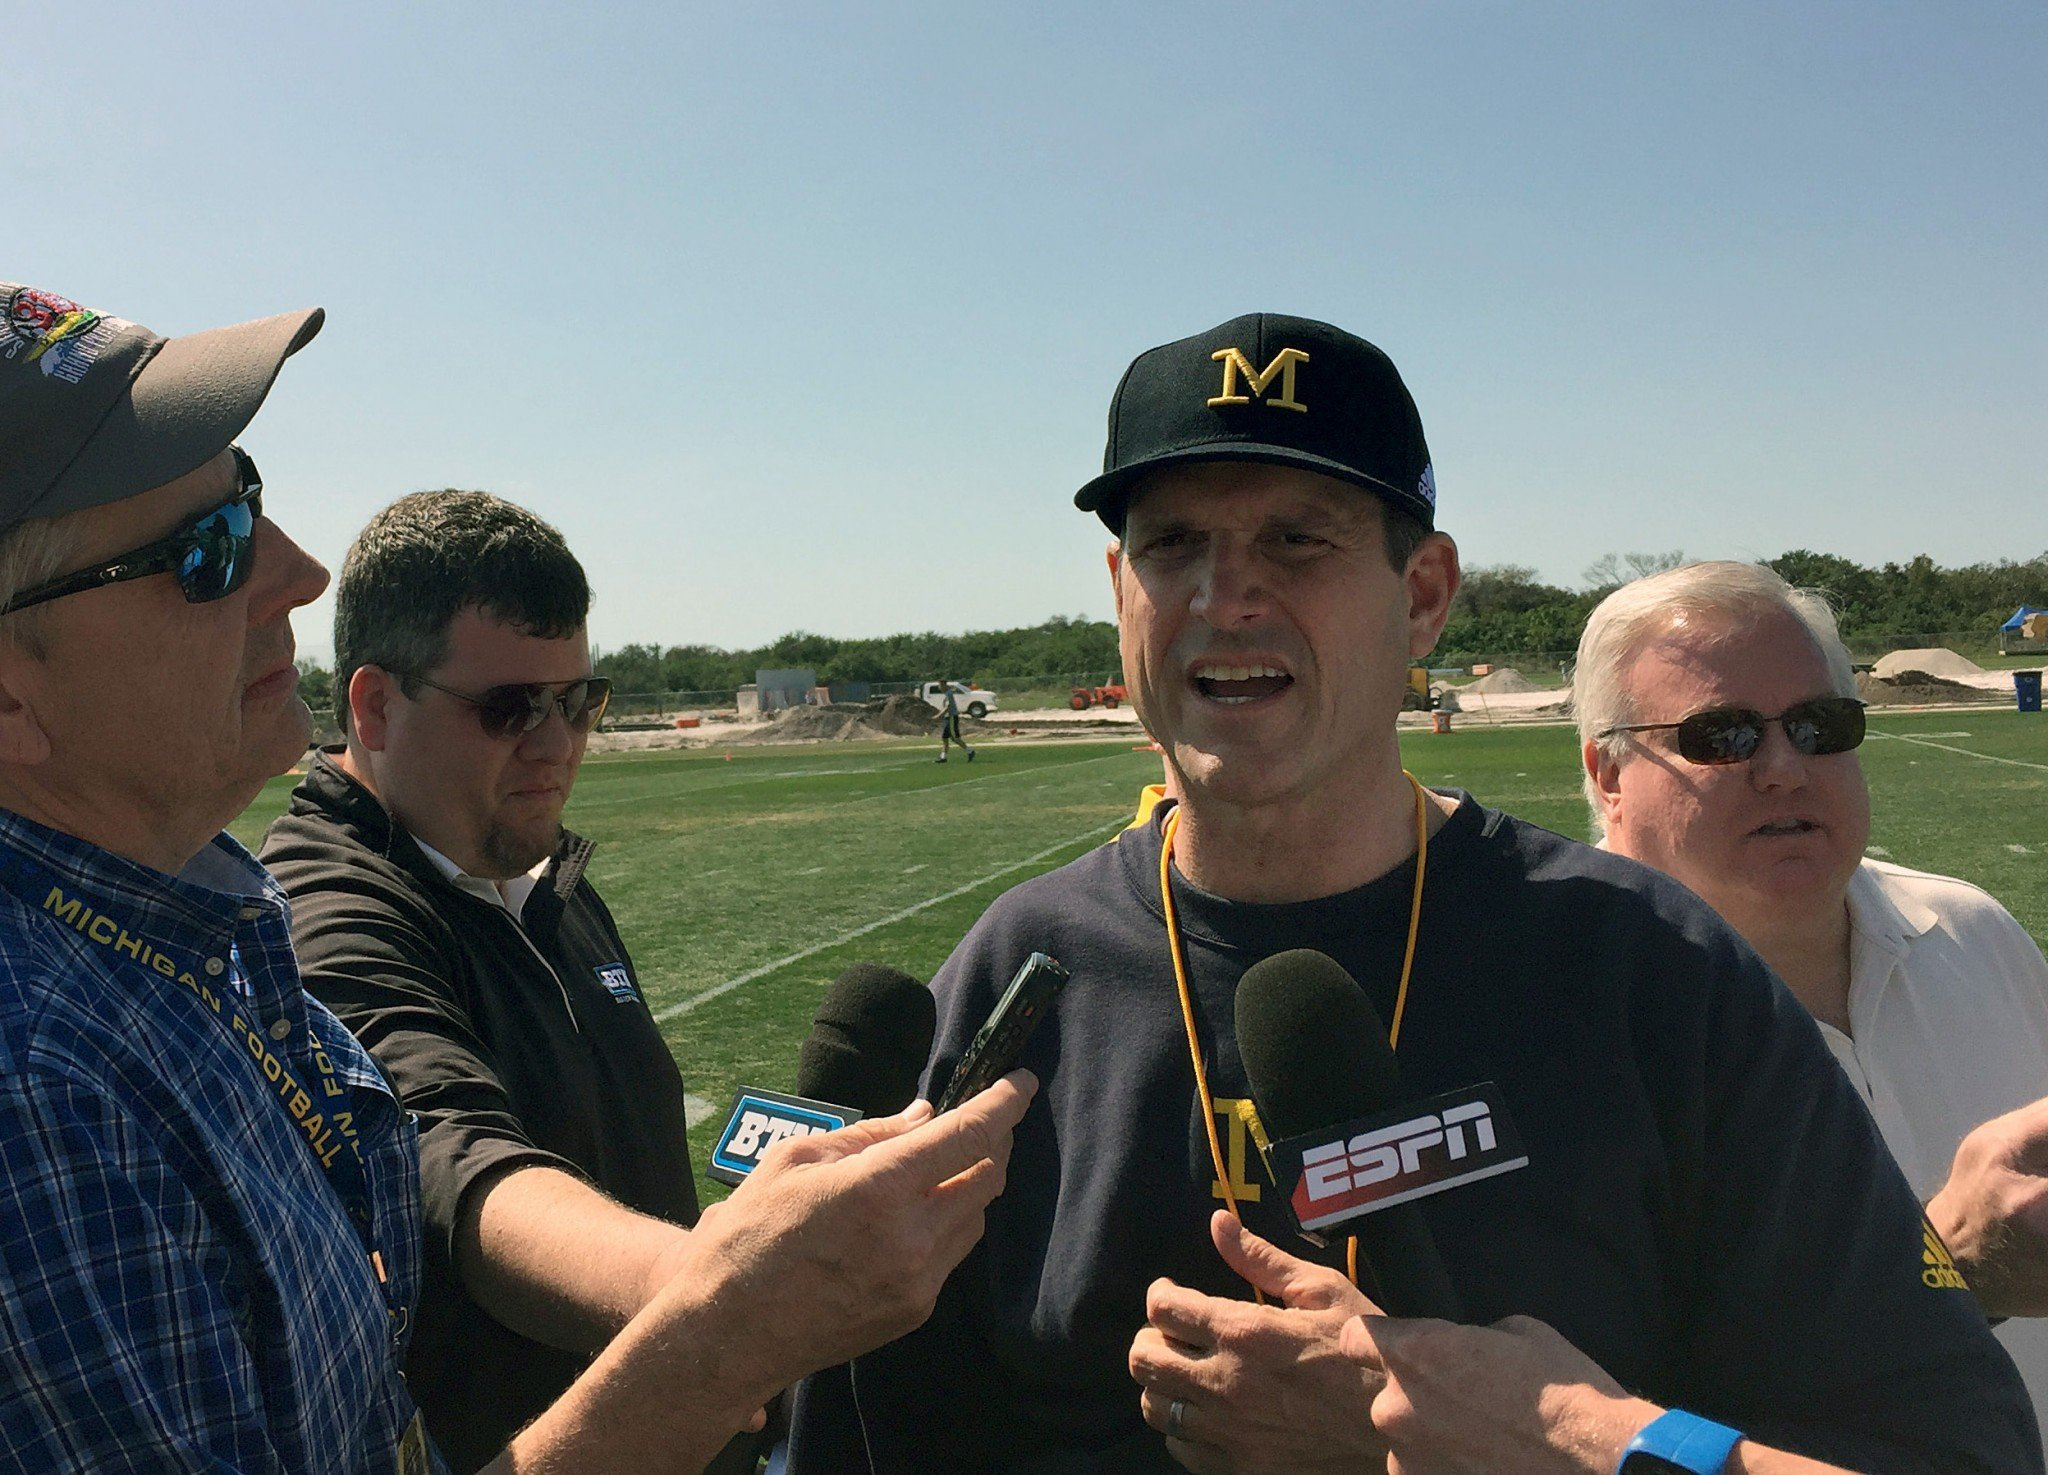 Michigan coach Jim Harbaugh brought his team to Florida for a part of spring practice in 2016. (AP Photo/Ralph Russo, File)